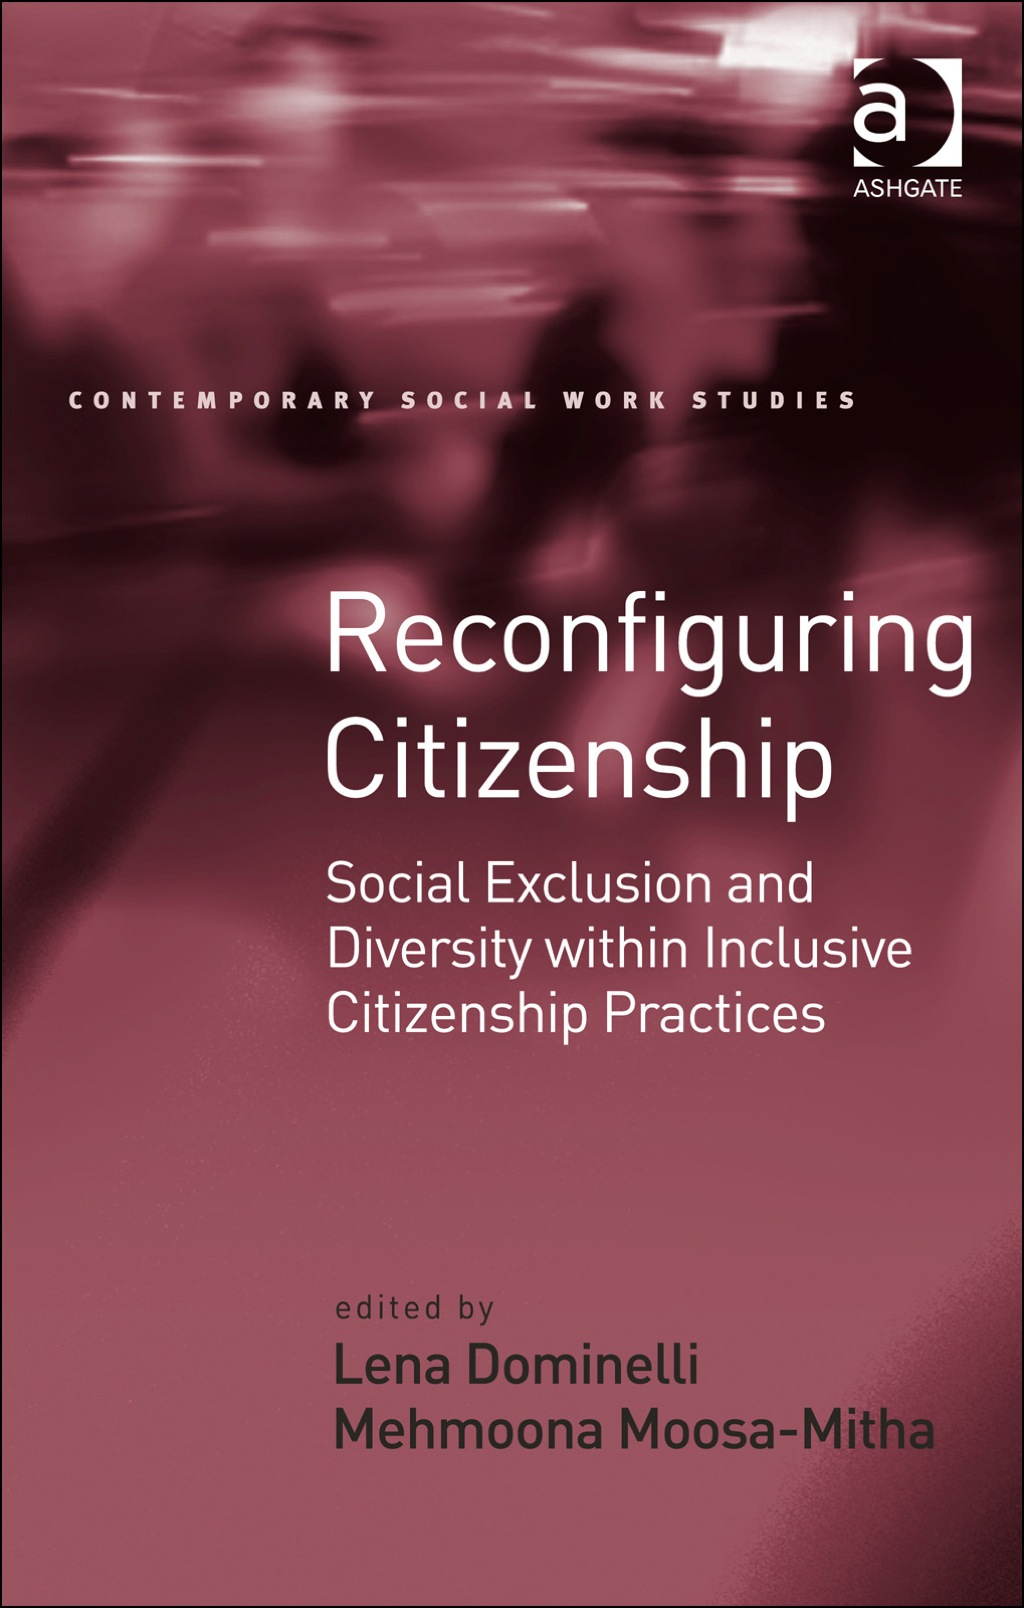 Reconfiguring Citizenship: Social Exclusion and Diversity within Inclusive Citizenship Practices (eBook Rental)